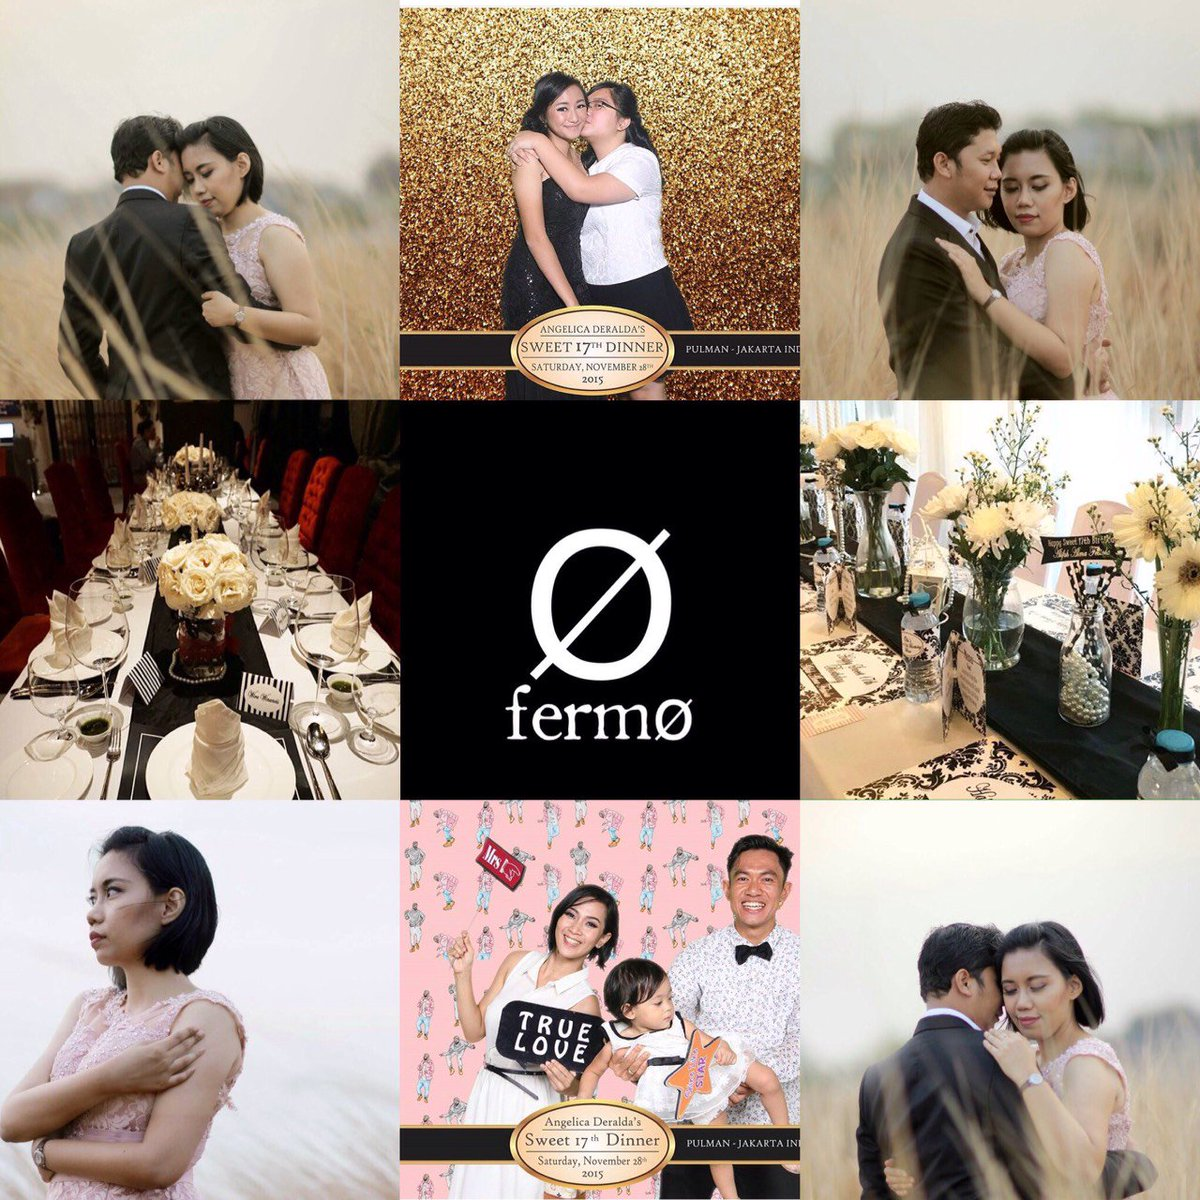 Fermo Jakarta ready to help you capture unforgettable moment in your life! For more info, visit our IG @fermojakarta https://t.co/nKUM6a3XDf